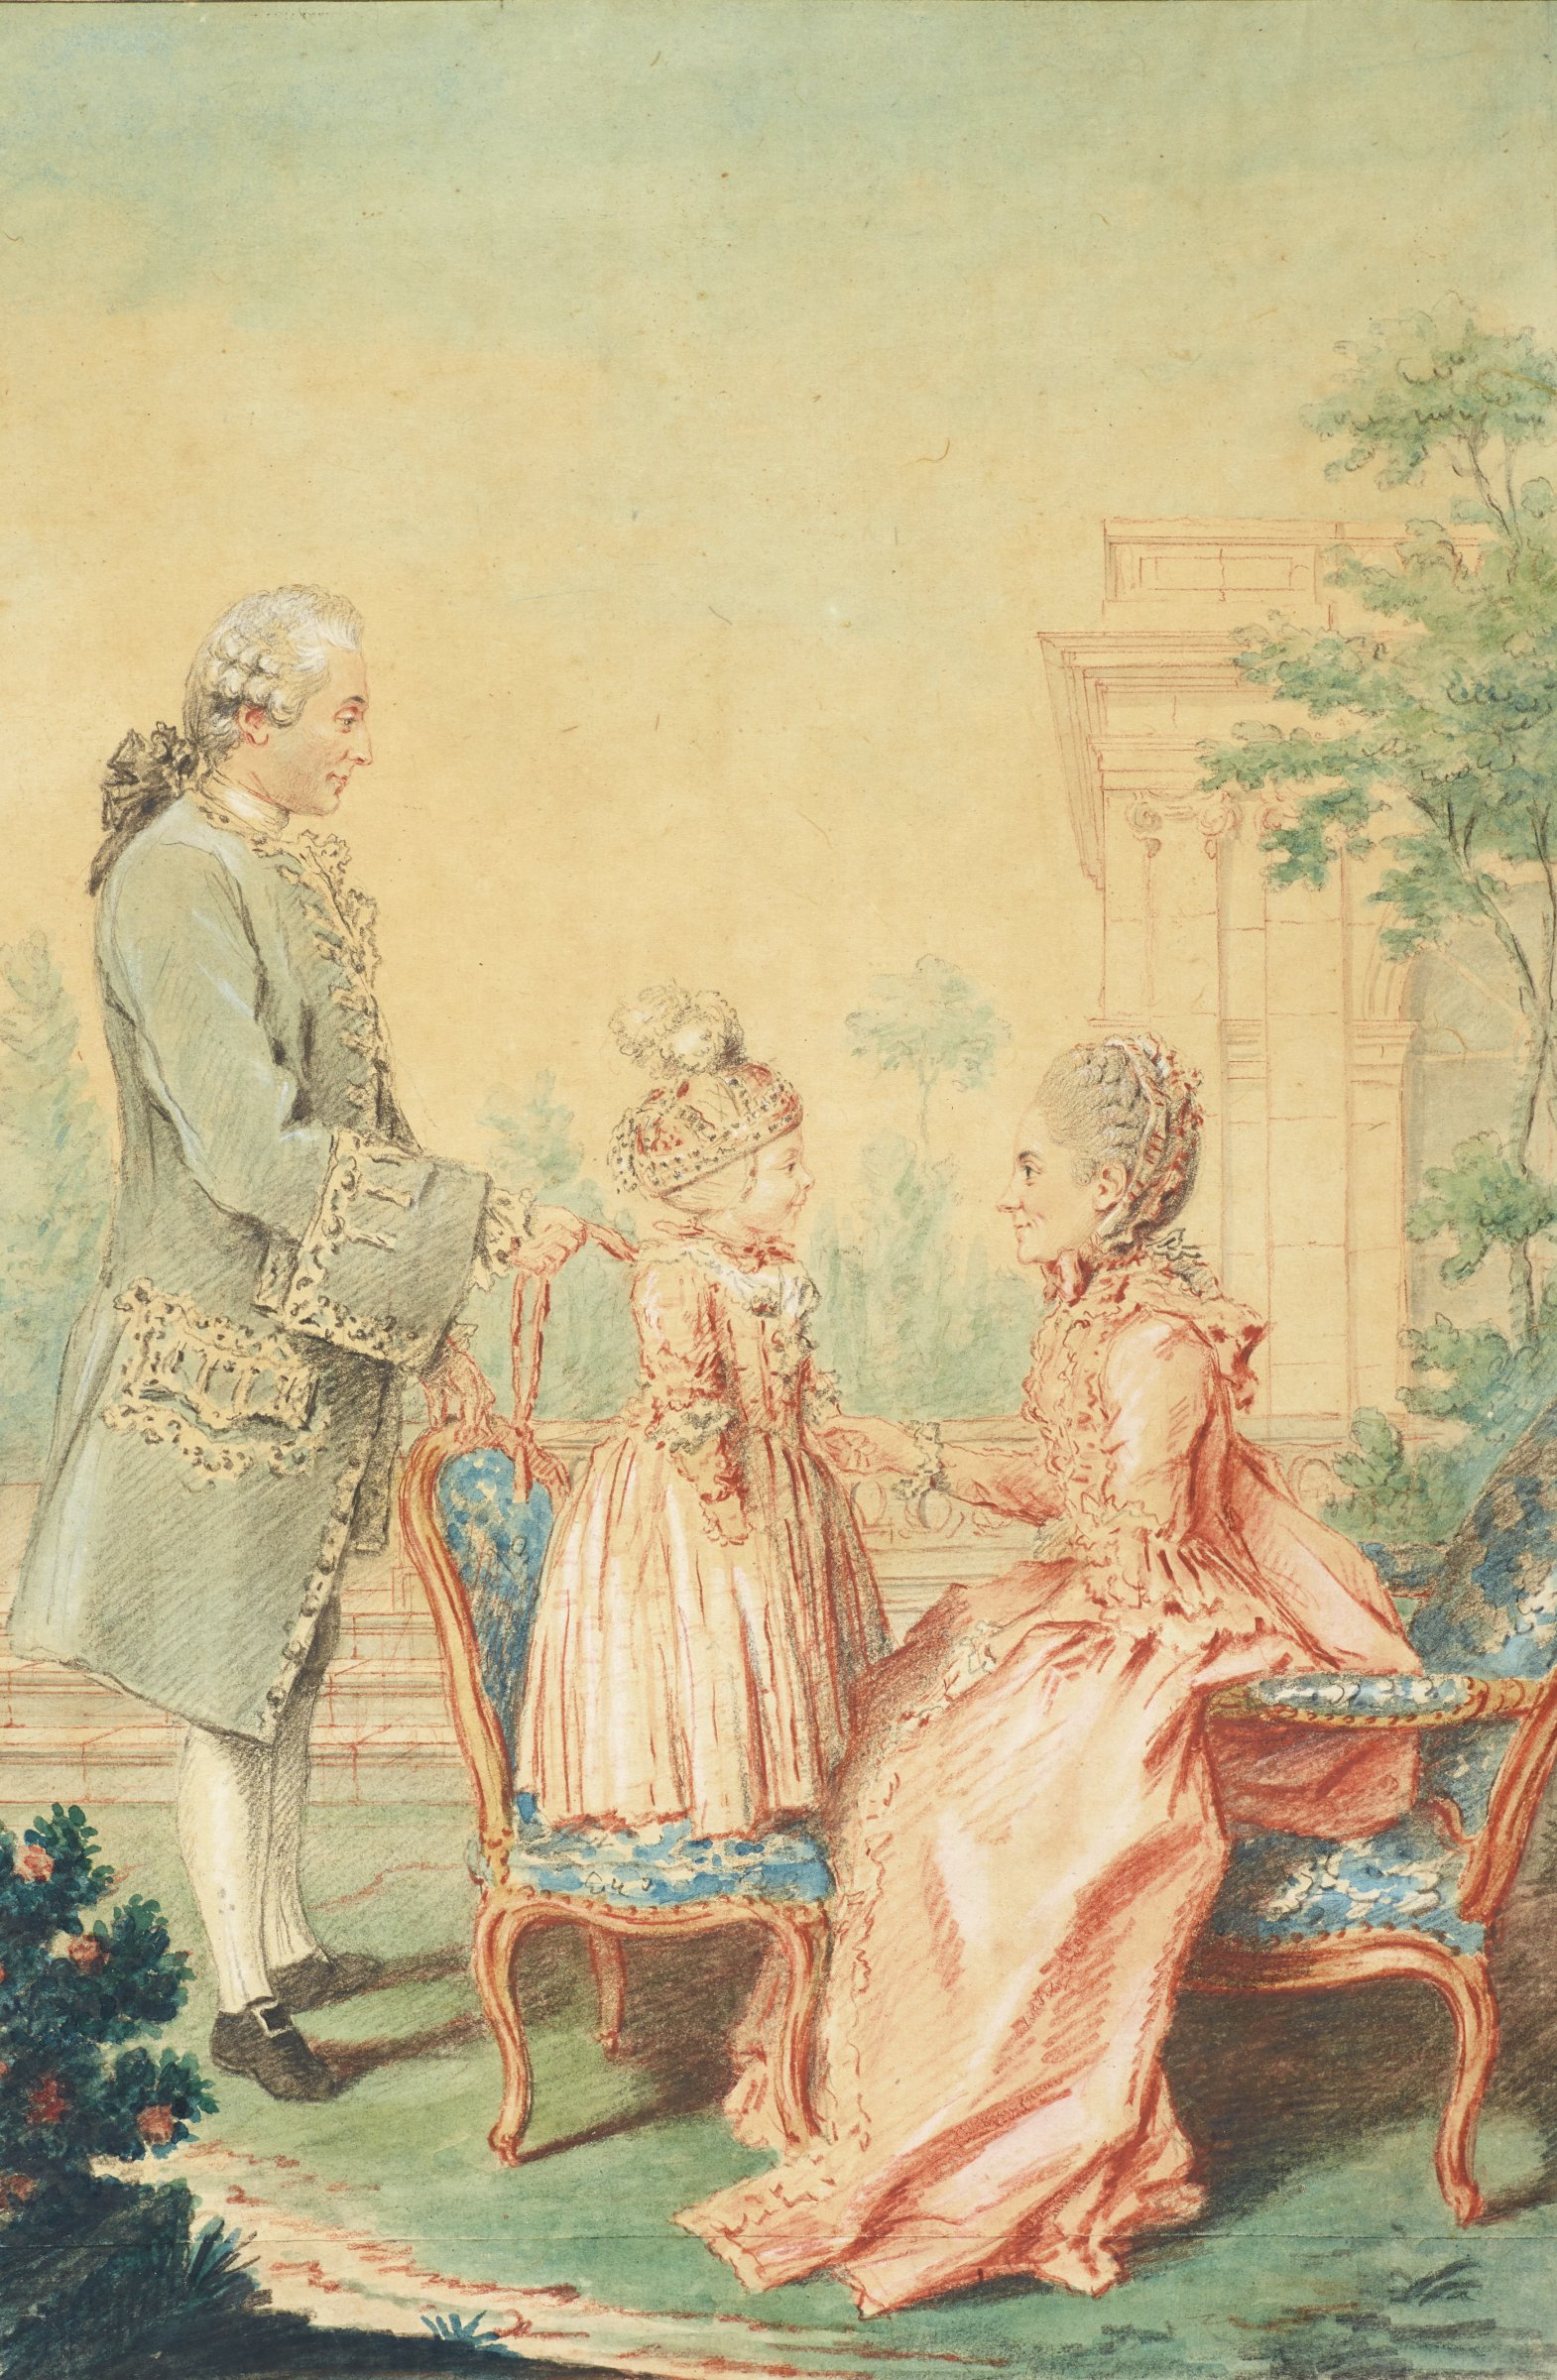 A family is portrayed in profile. On the right, a woman sits in a chair holding the hand of a young boy that stands in a chair in front of her. On the left, a man stands behind the young boy, holding onto his garment to stabilize him.